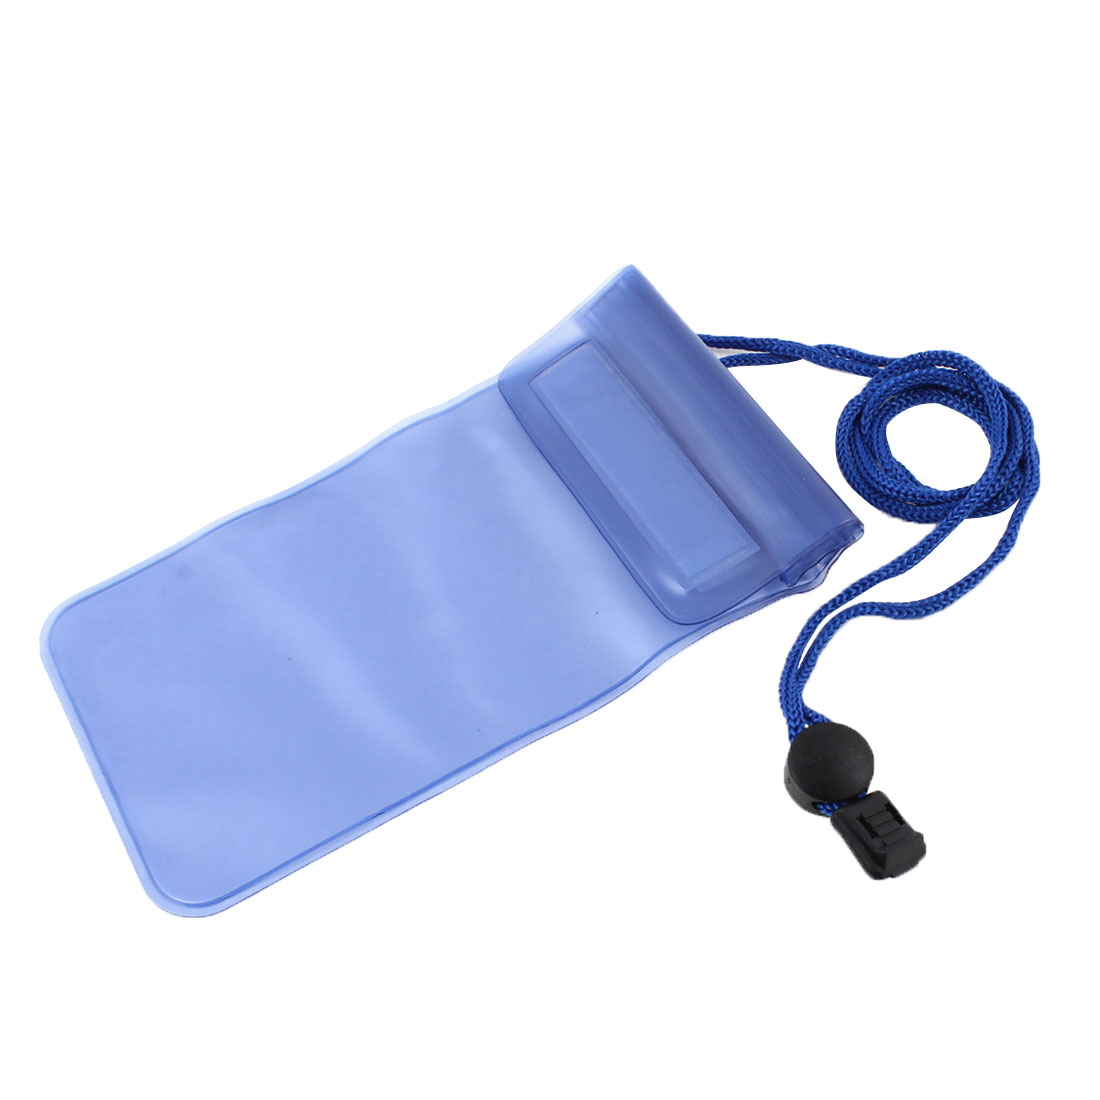 Water Resistant Shoulder Bag Pouch Clear Blue for Phone MP3 MP4